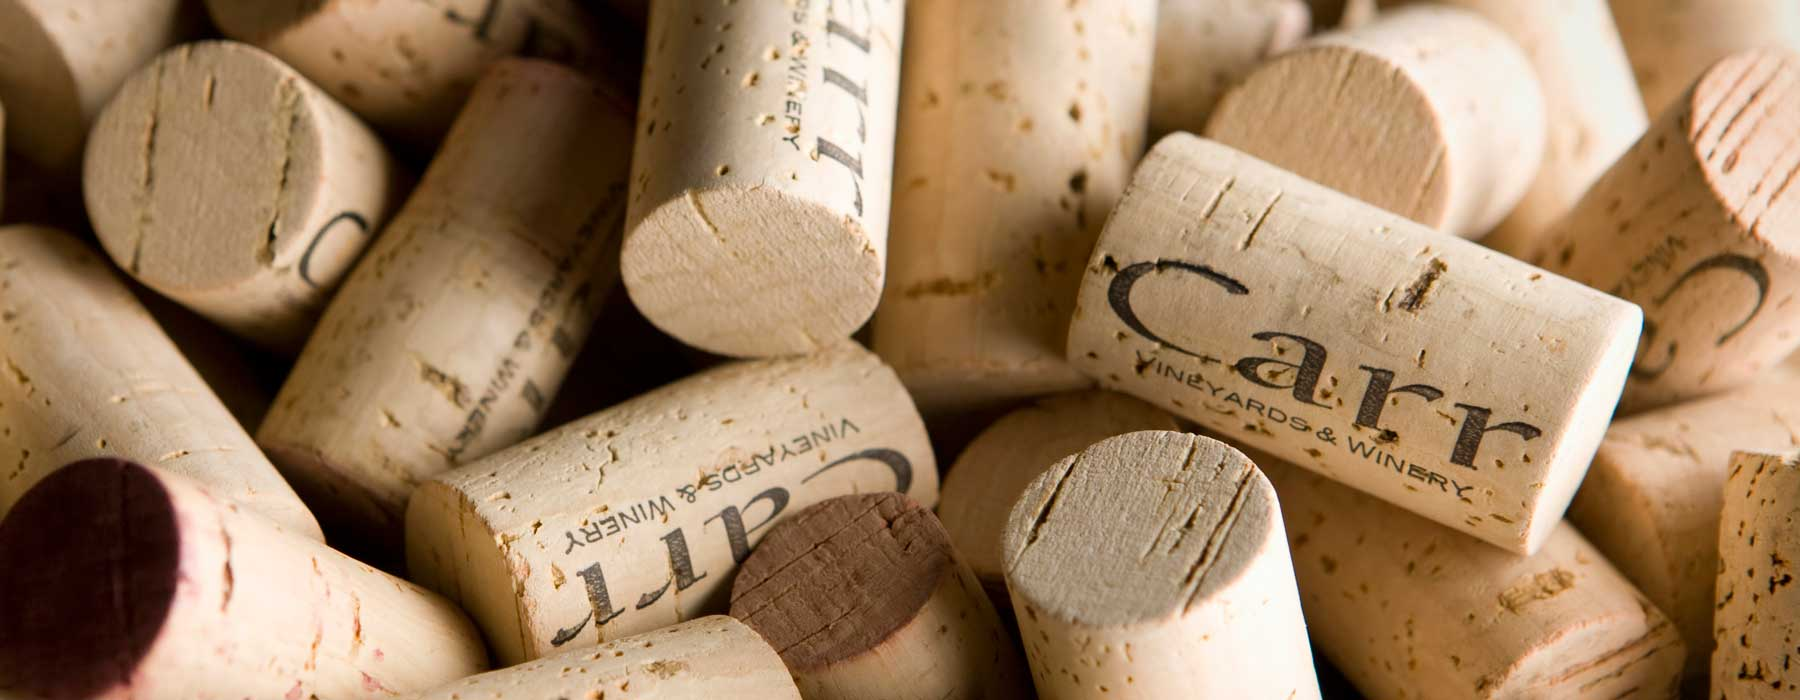 A bunch of Carr Winery corks